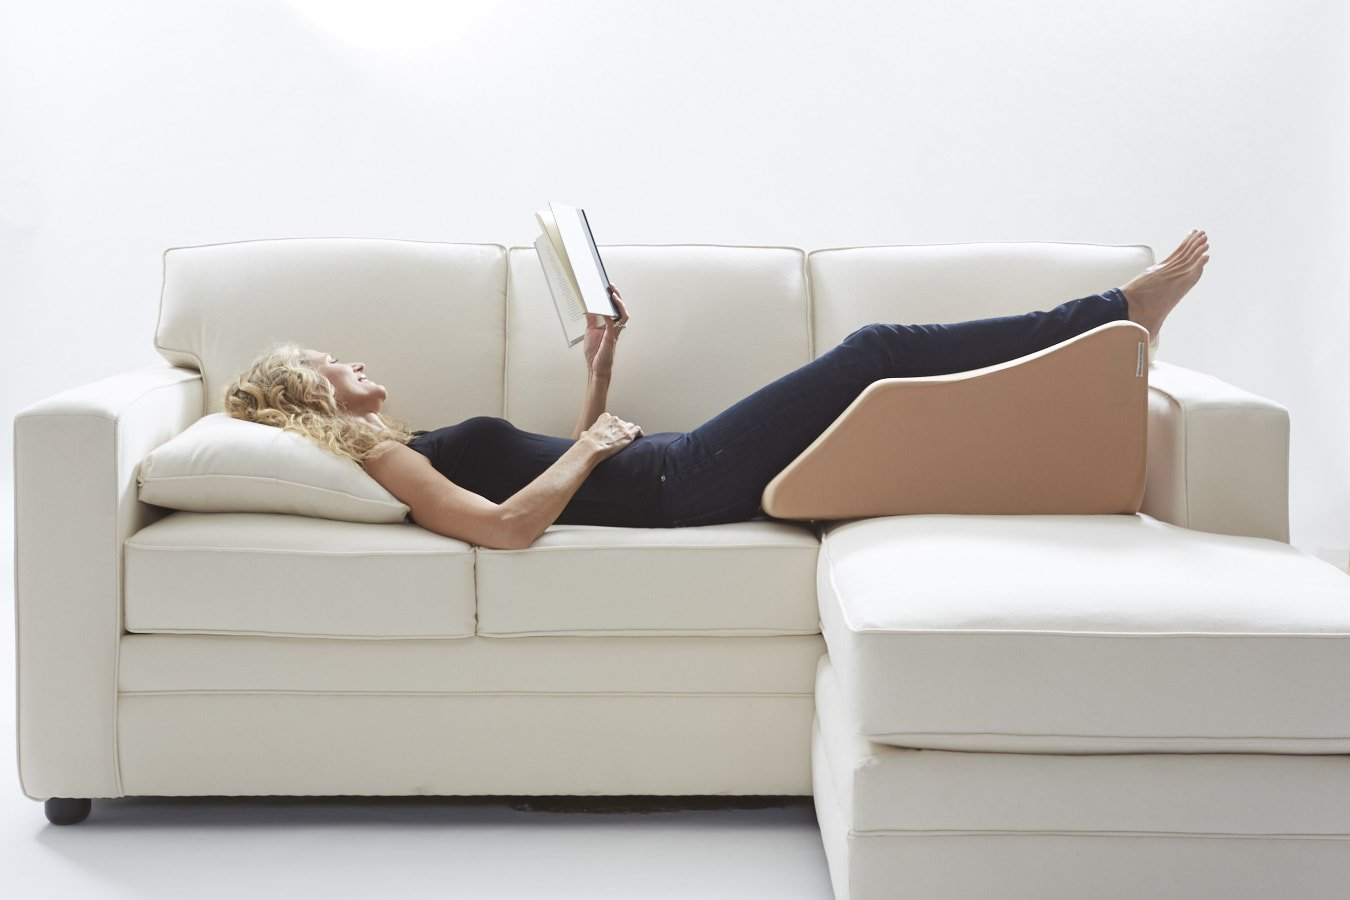 Lounge Doctor Elevating Leg Rest Pillow Wedge Foam w Cappuccino Cover Large Foot pillow Leg Support leg swelling vein issues lymphedema restless legs Pregnancy by The Lounge Dr. (Image #2)